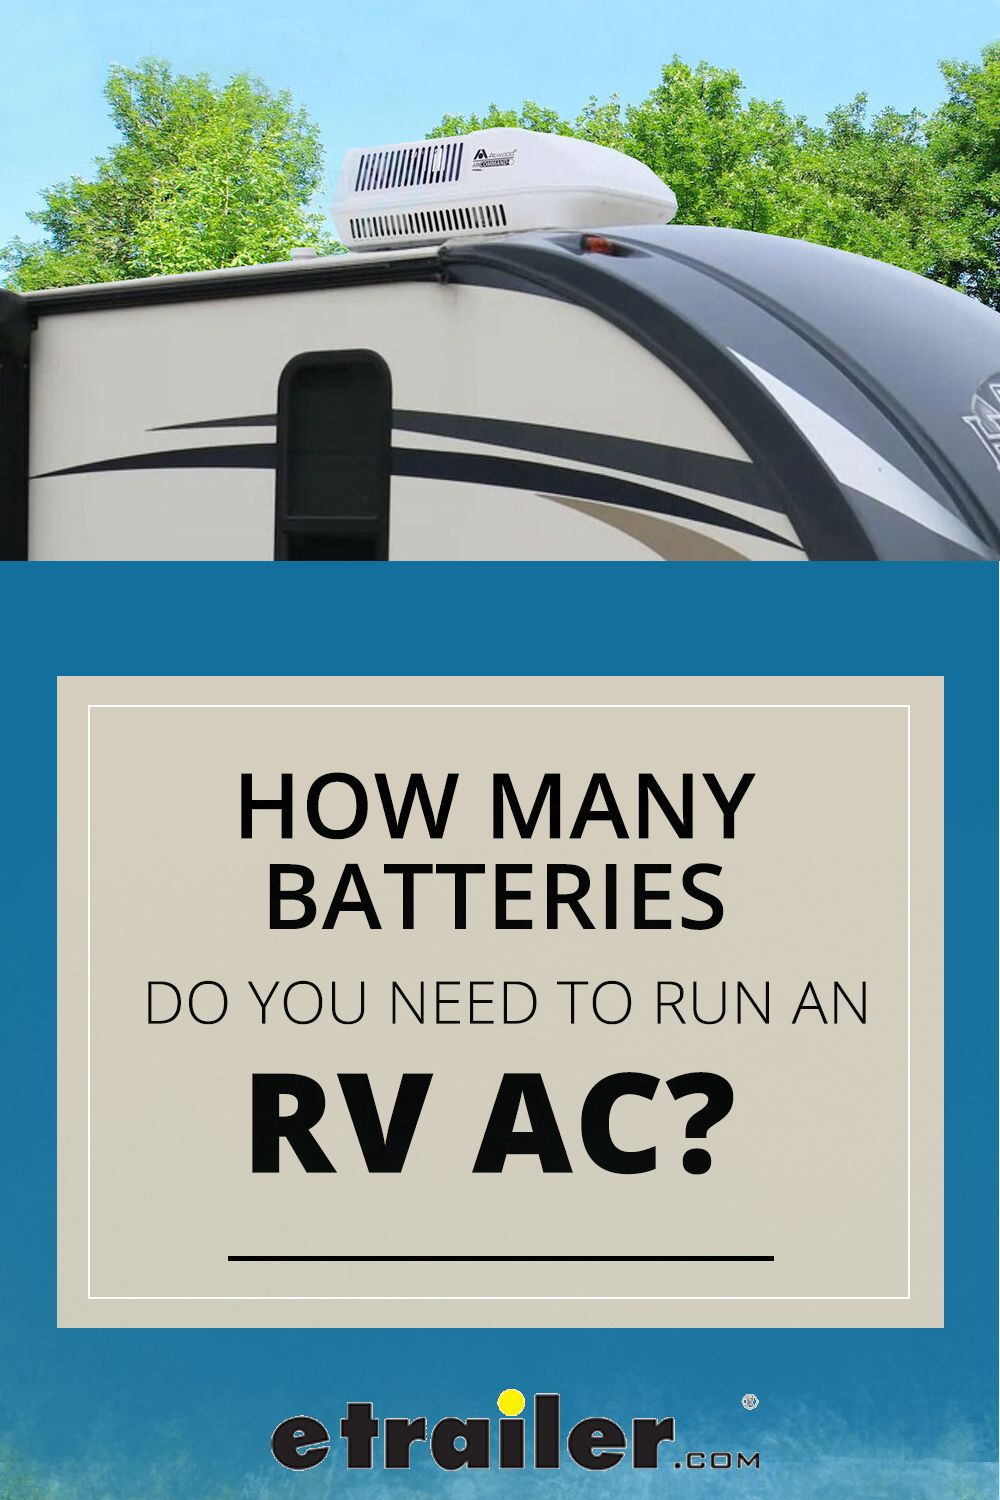 If you're trying to calculate how many batteries you'll